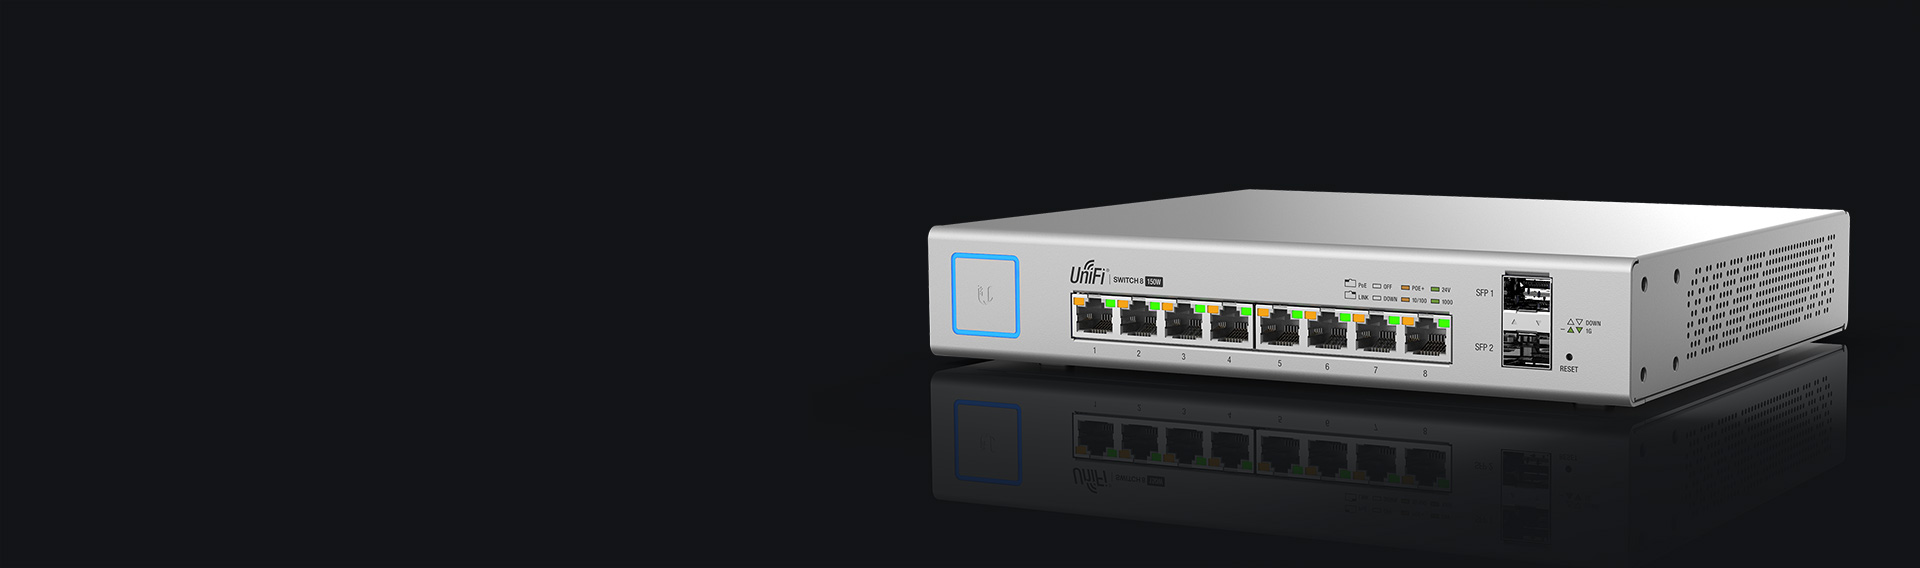 Ubiquiti Networks Unifi 174 Switch 8 150w